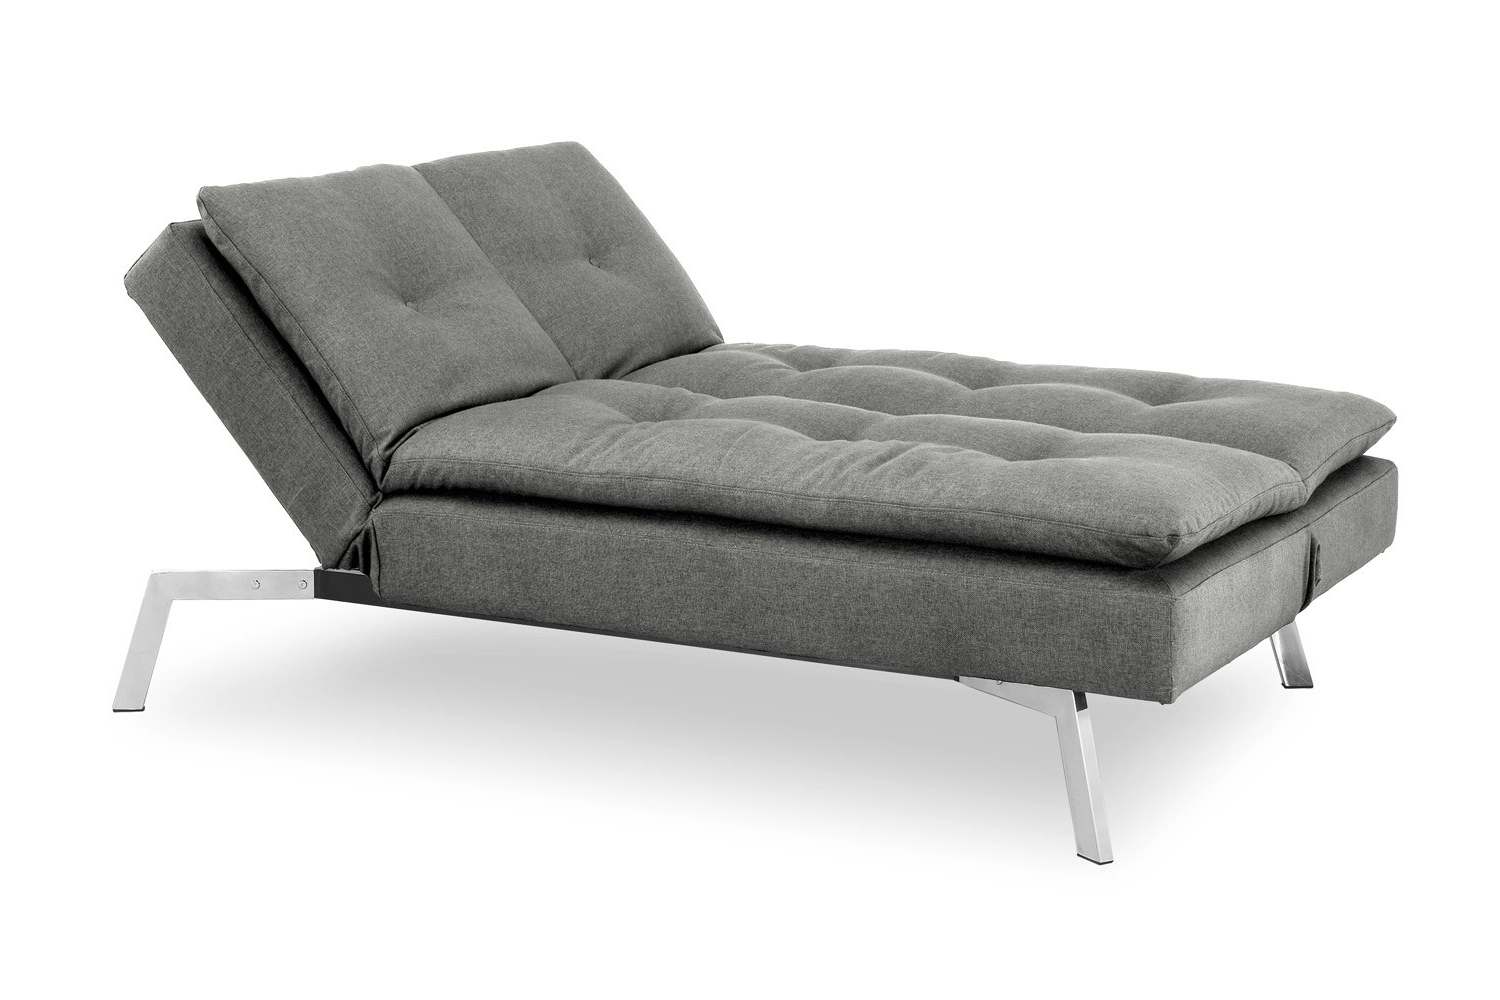 Shelby Futon (View 10 of 15)